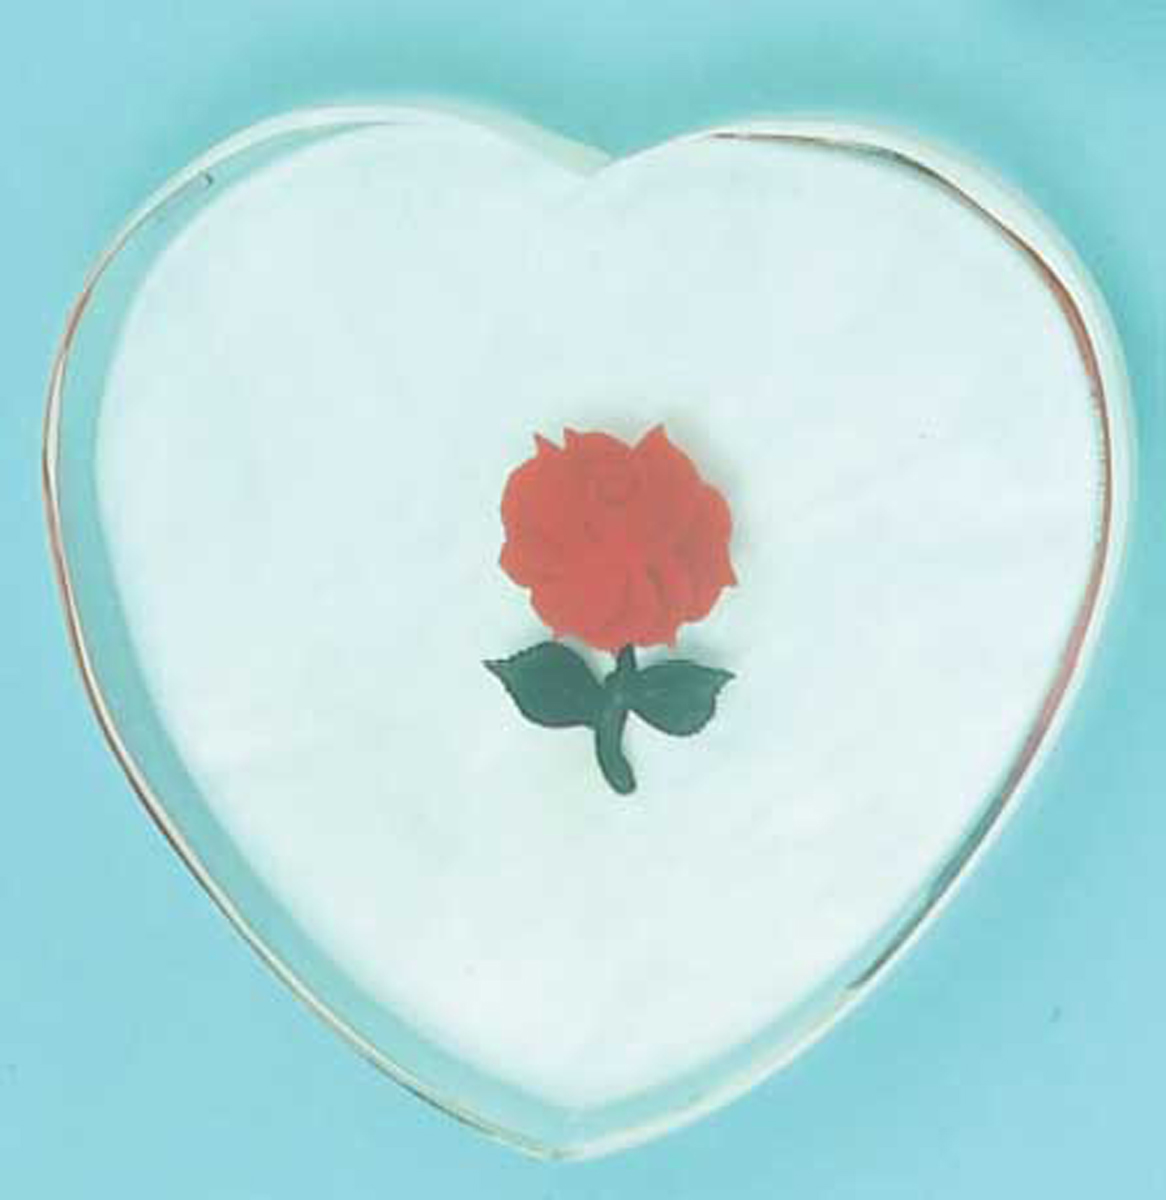 HEART SHAPED LUCITE SOUND BLOCK W/RED ROSE 3 1/2""